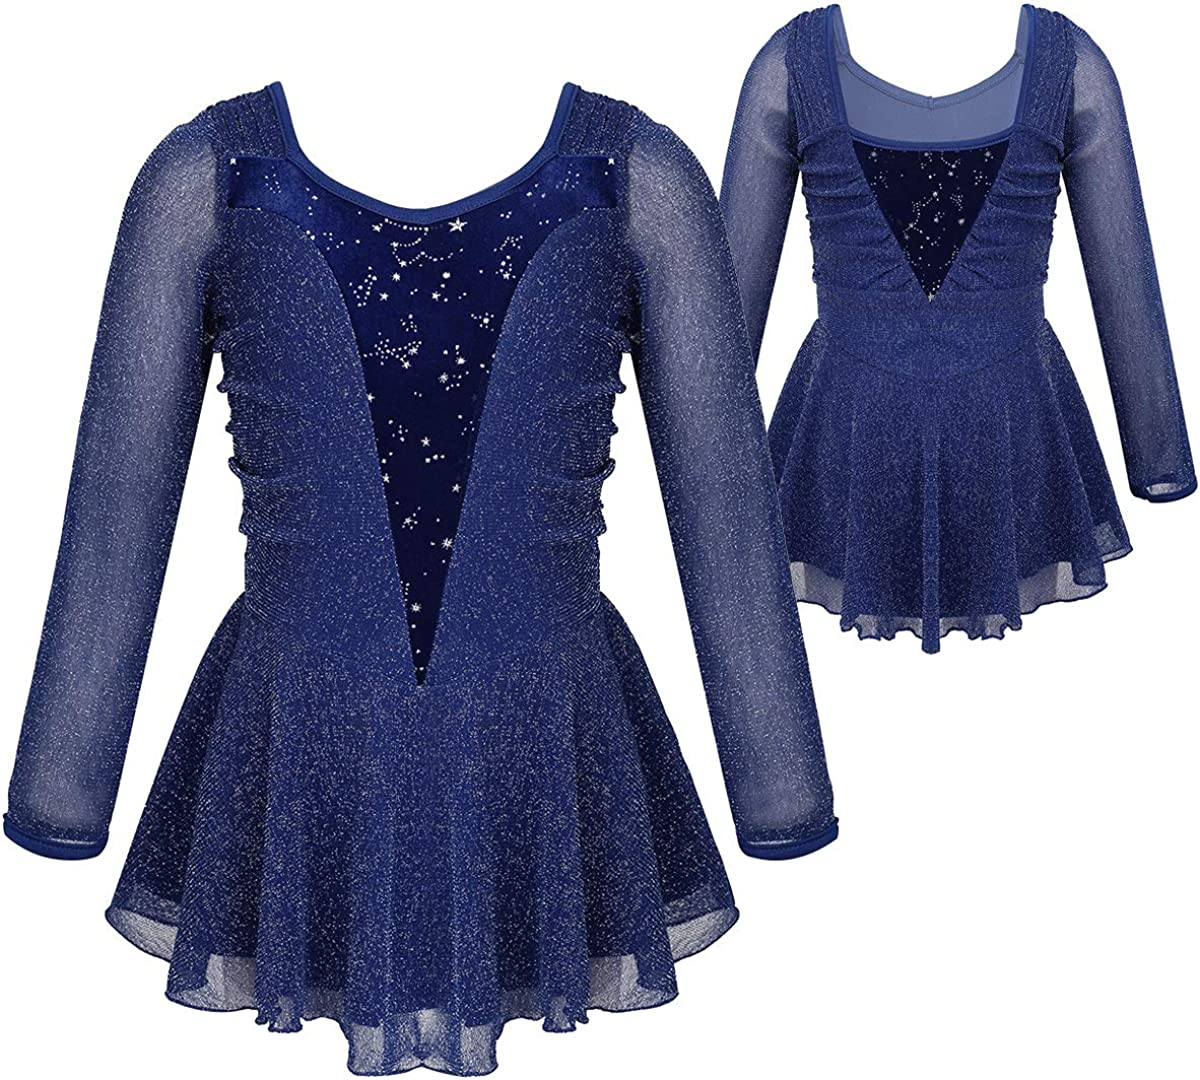 YOOJIA Kids Girls Shiny Long Sleeves Splice Figure Ice Skating Leotard Dress Ballet Dance Gymnastics Activewear